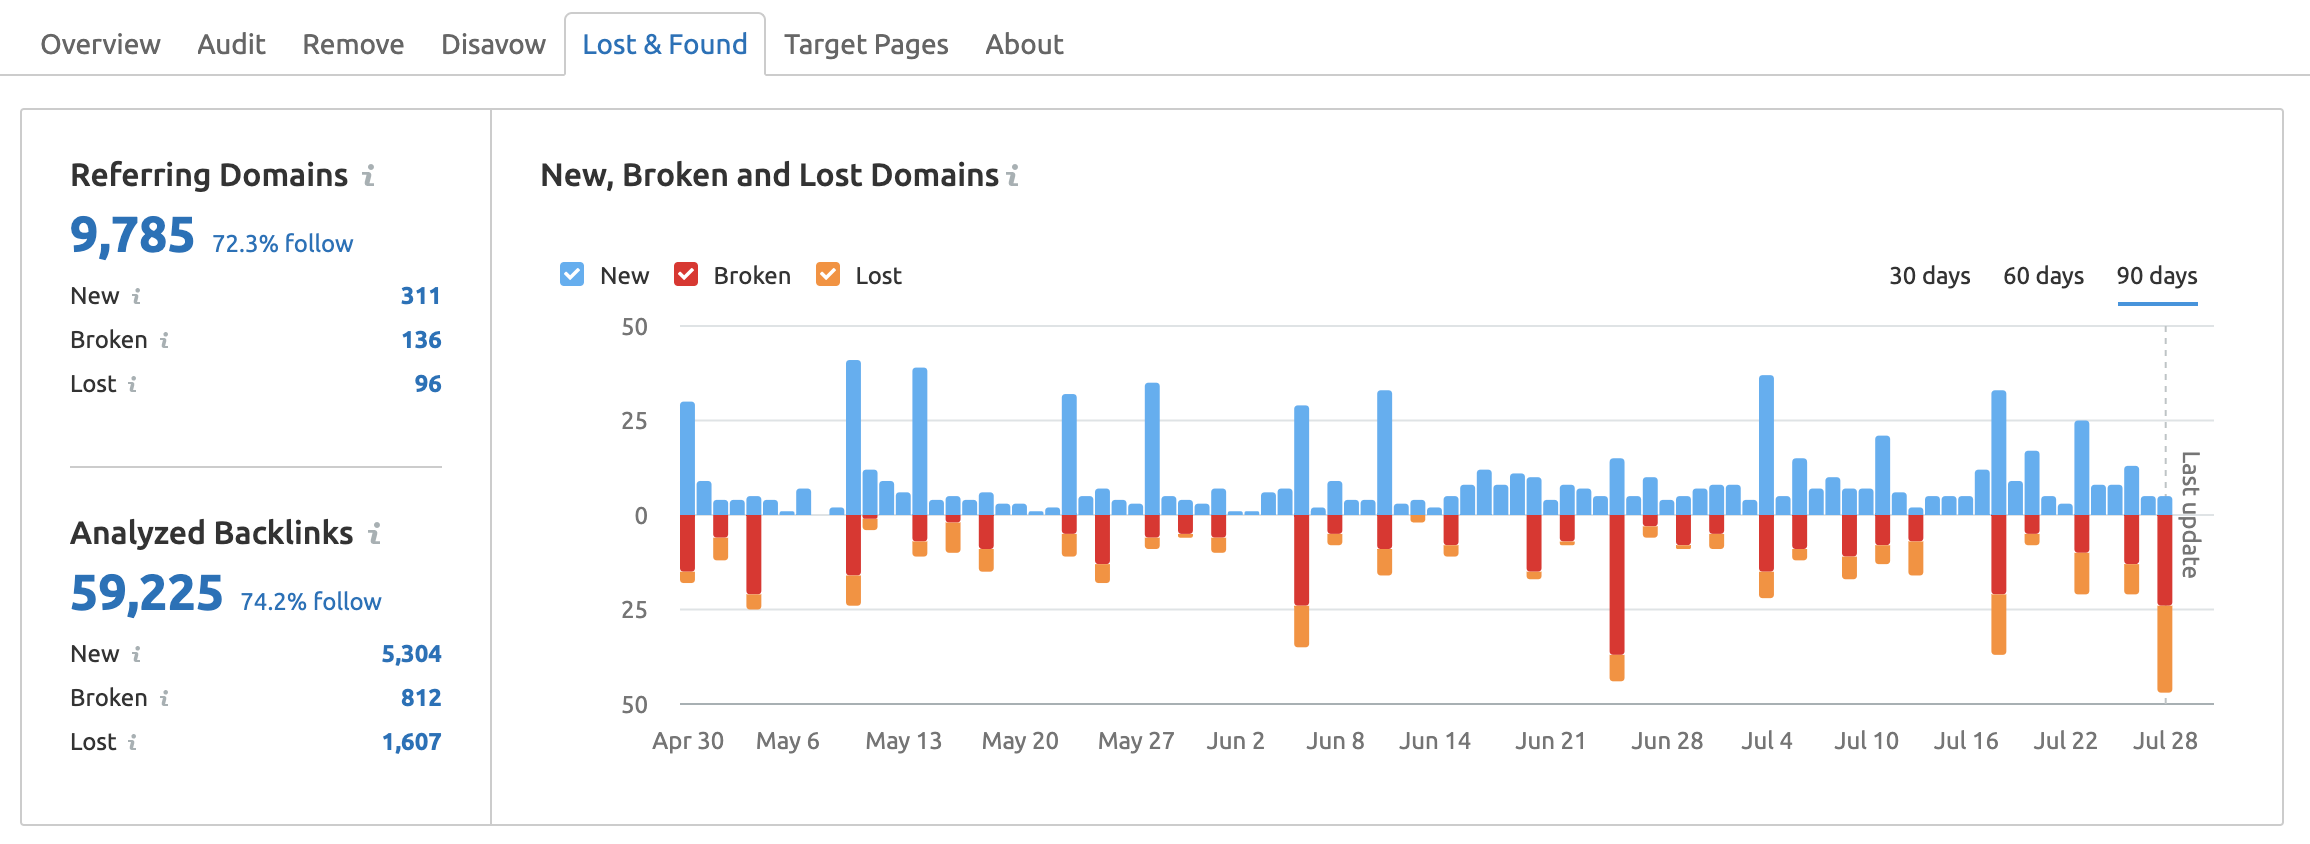 Backlink Audit Lost and Found